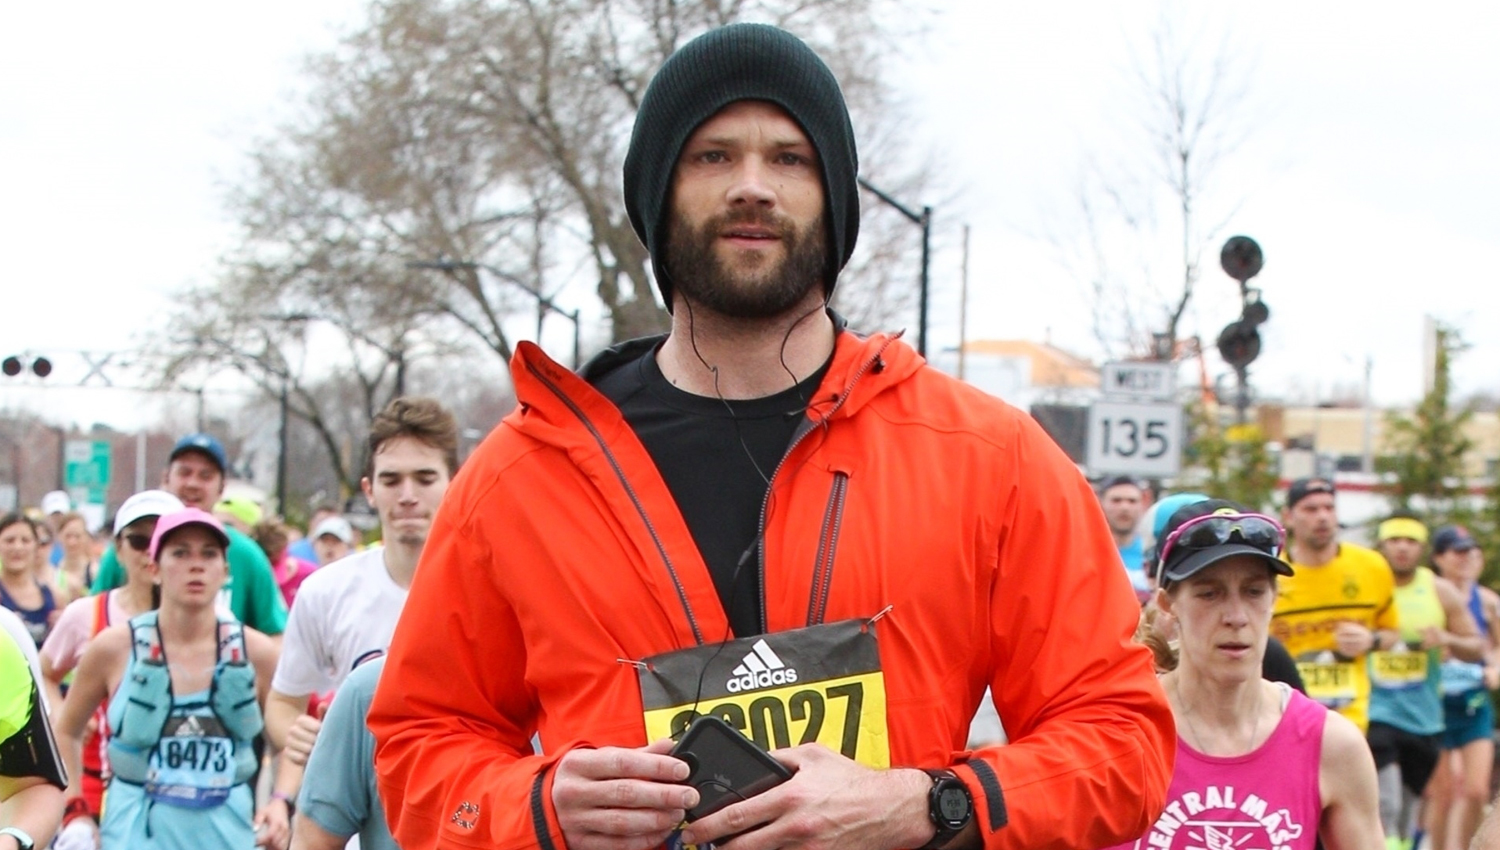 Jared Padalecki Runs The Boston Marathon See Photos